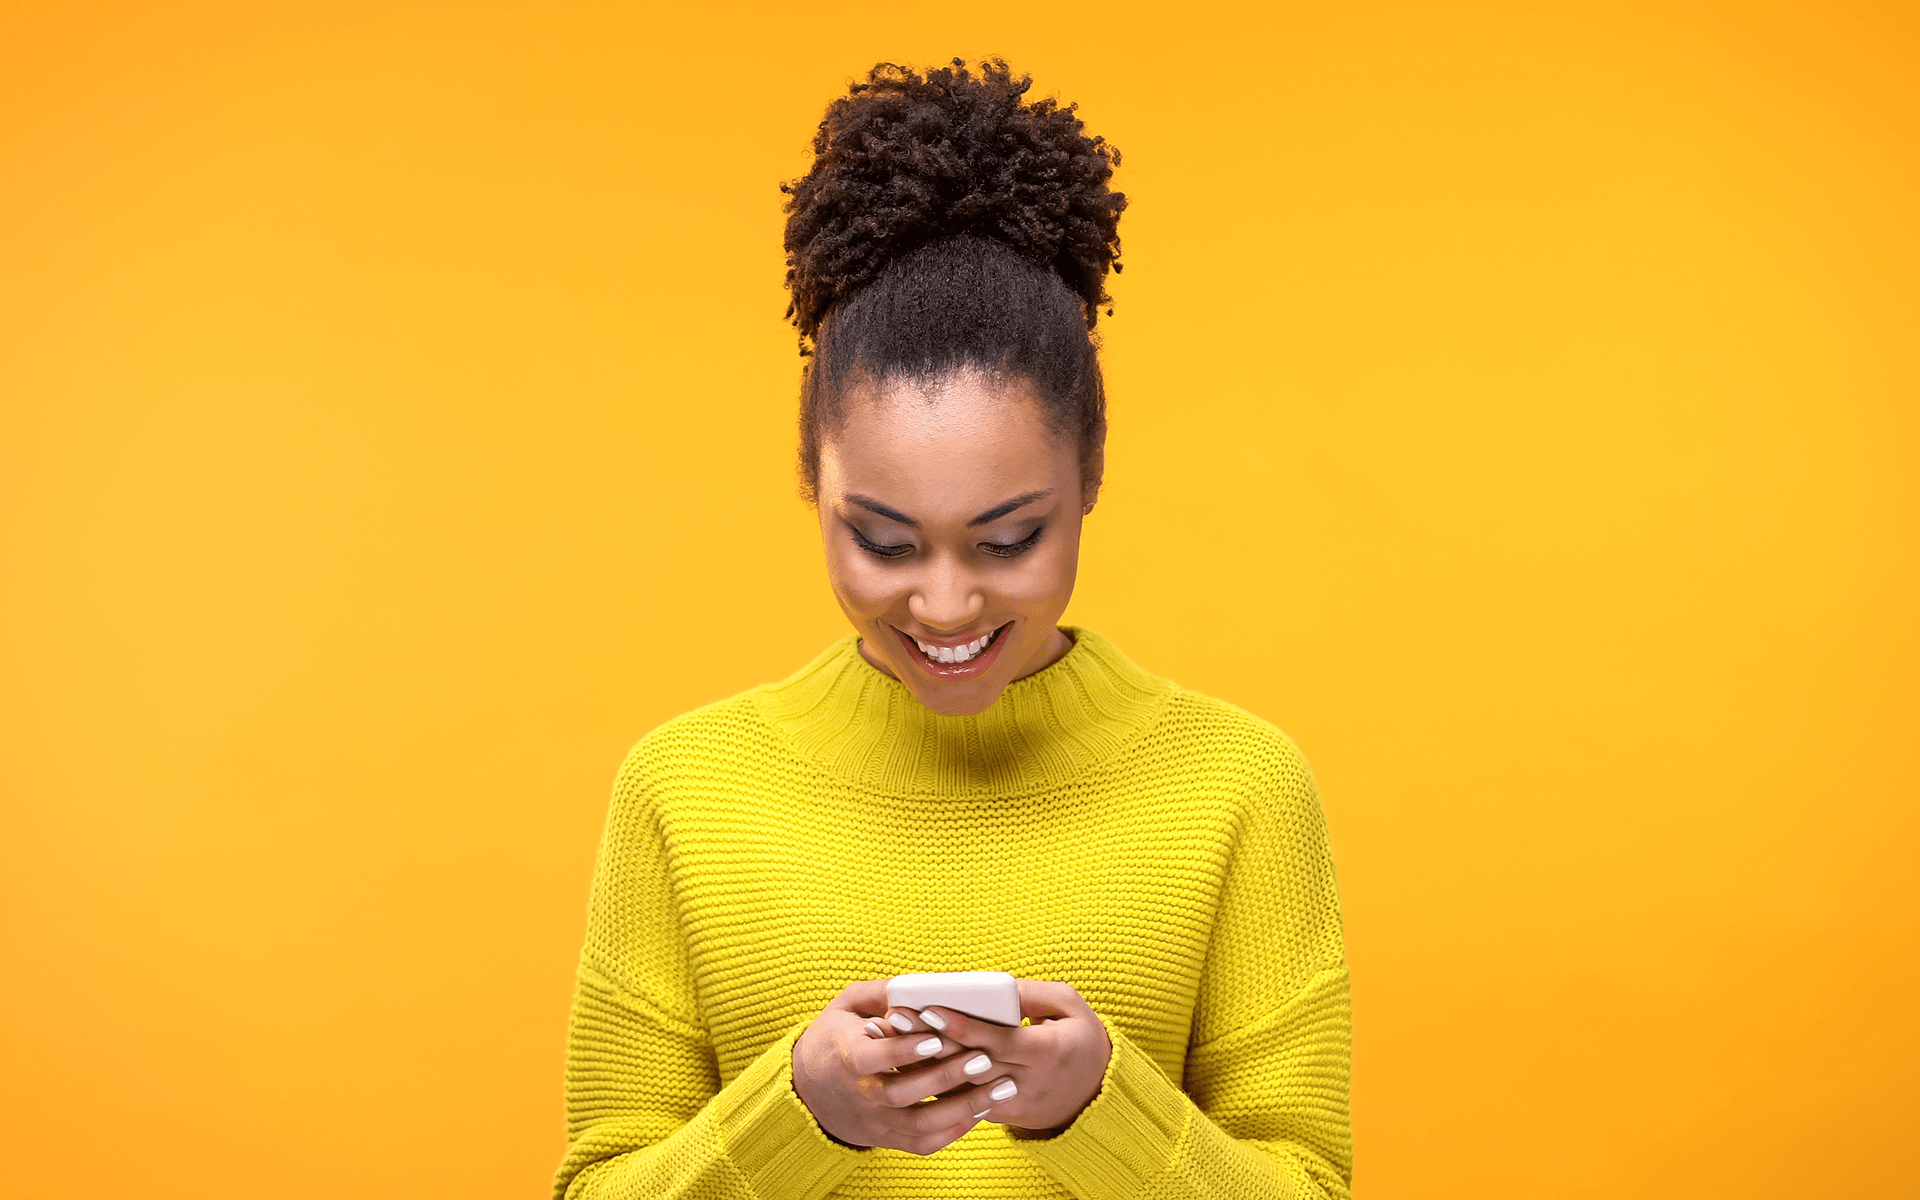 Black woman in a yellow T-shirt smiling down at her phone with a yellow studio background.